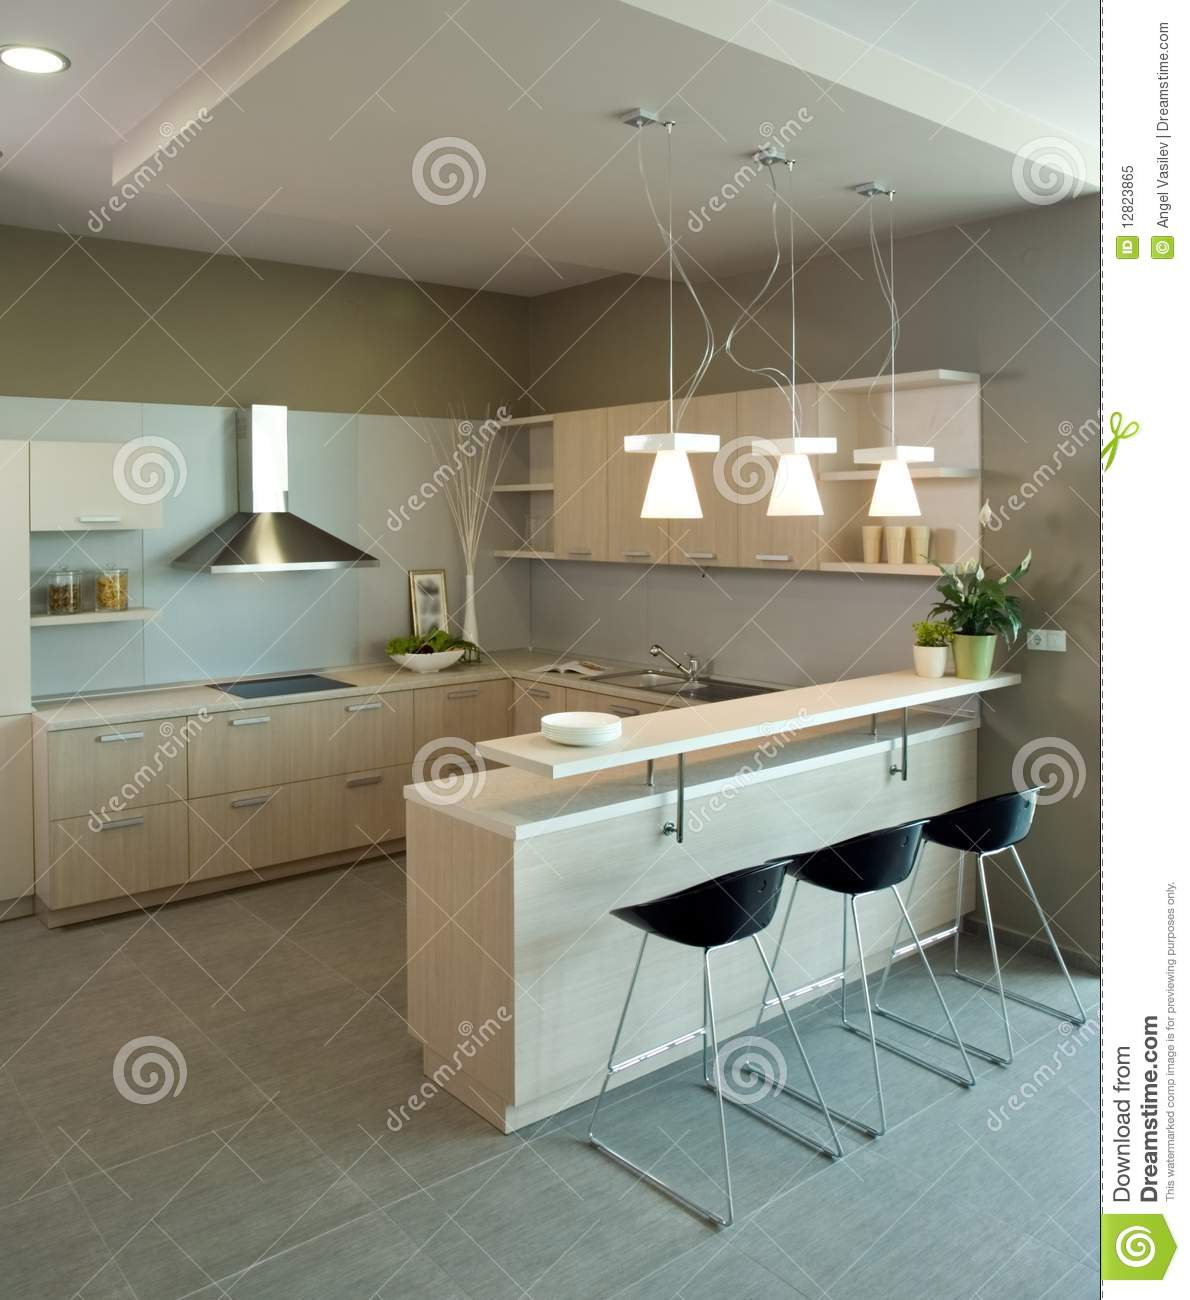 Elegant and luxury kitchen interior design stock image for Elegant interior design